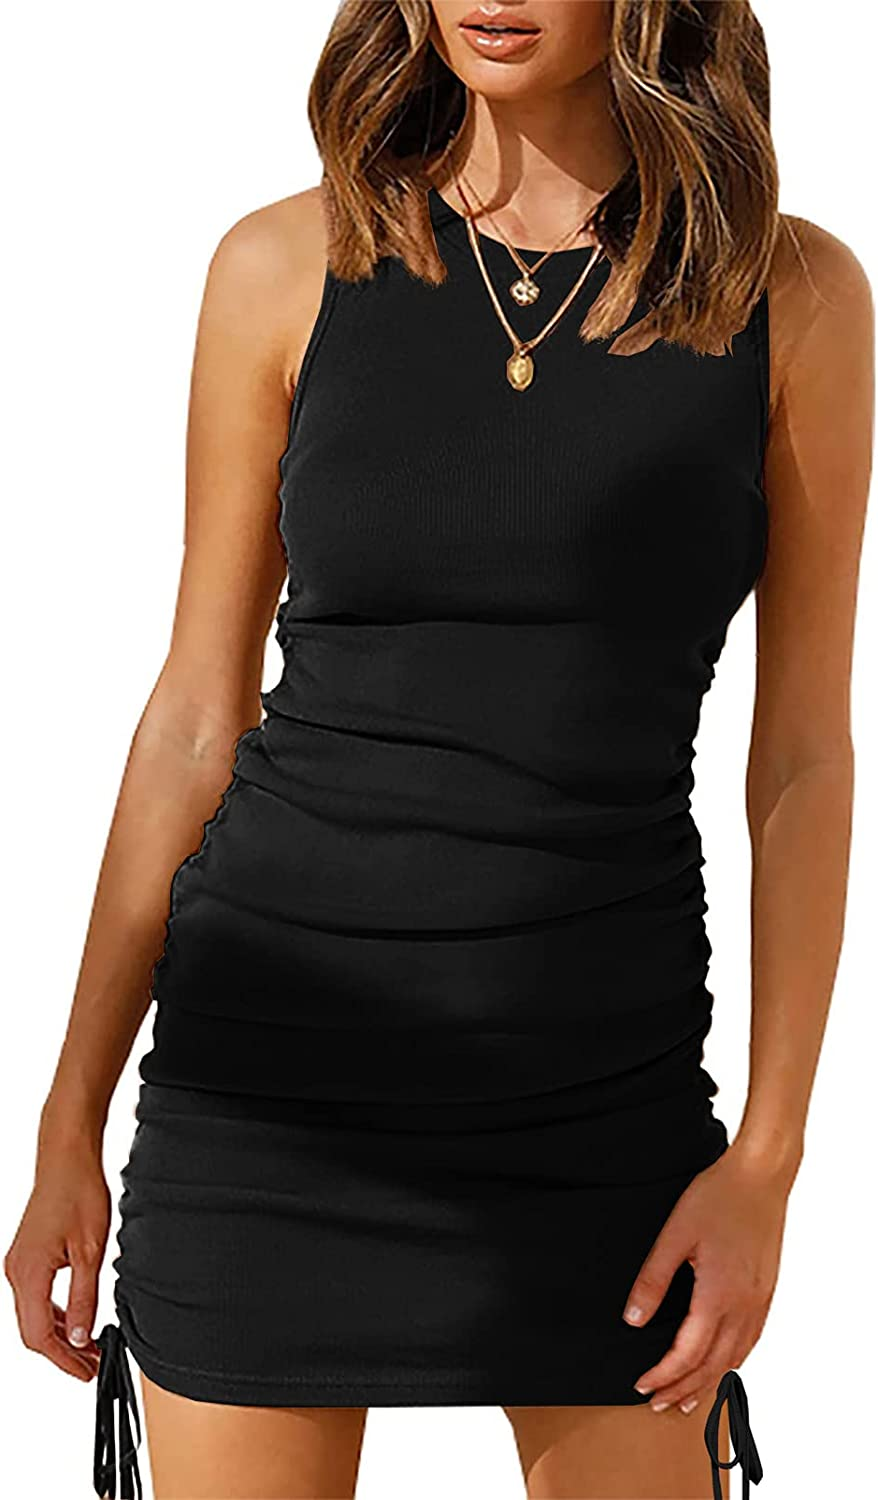 Women Sleeveless Bodycon Ruched Short Dress Side Drawstring Solid Crew Neck Casual Summer Tank Mini Dresses